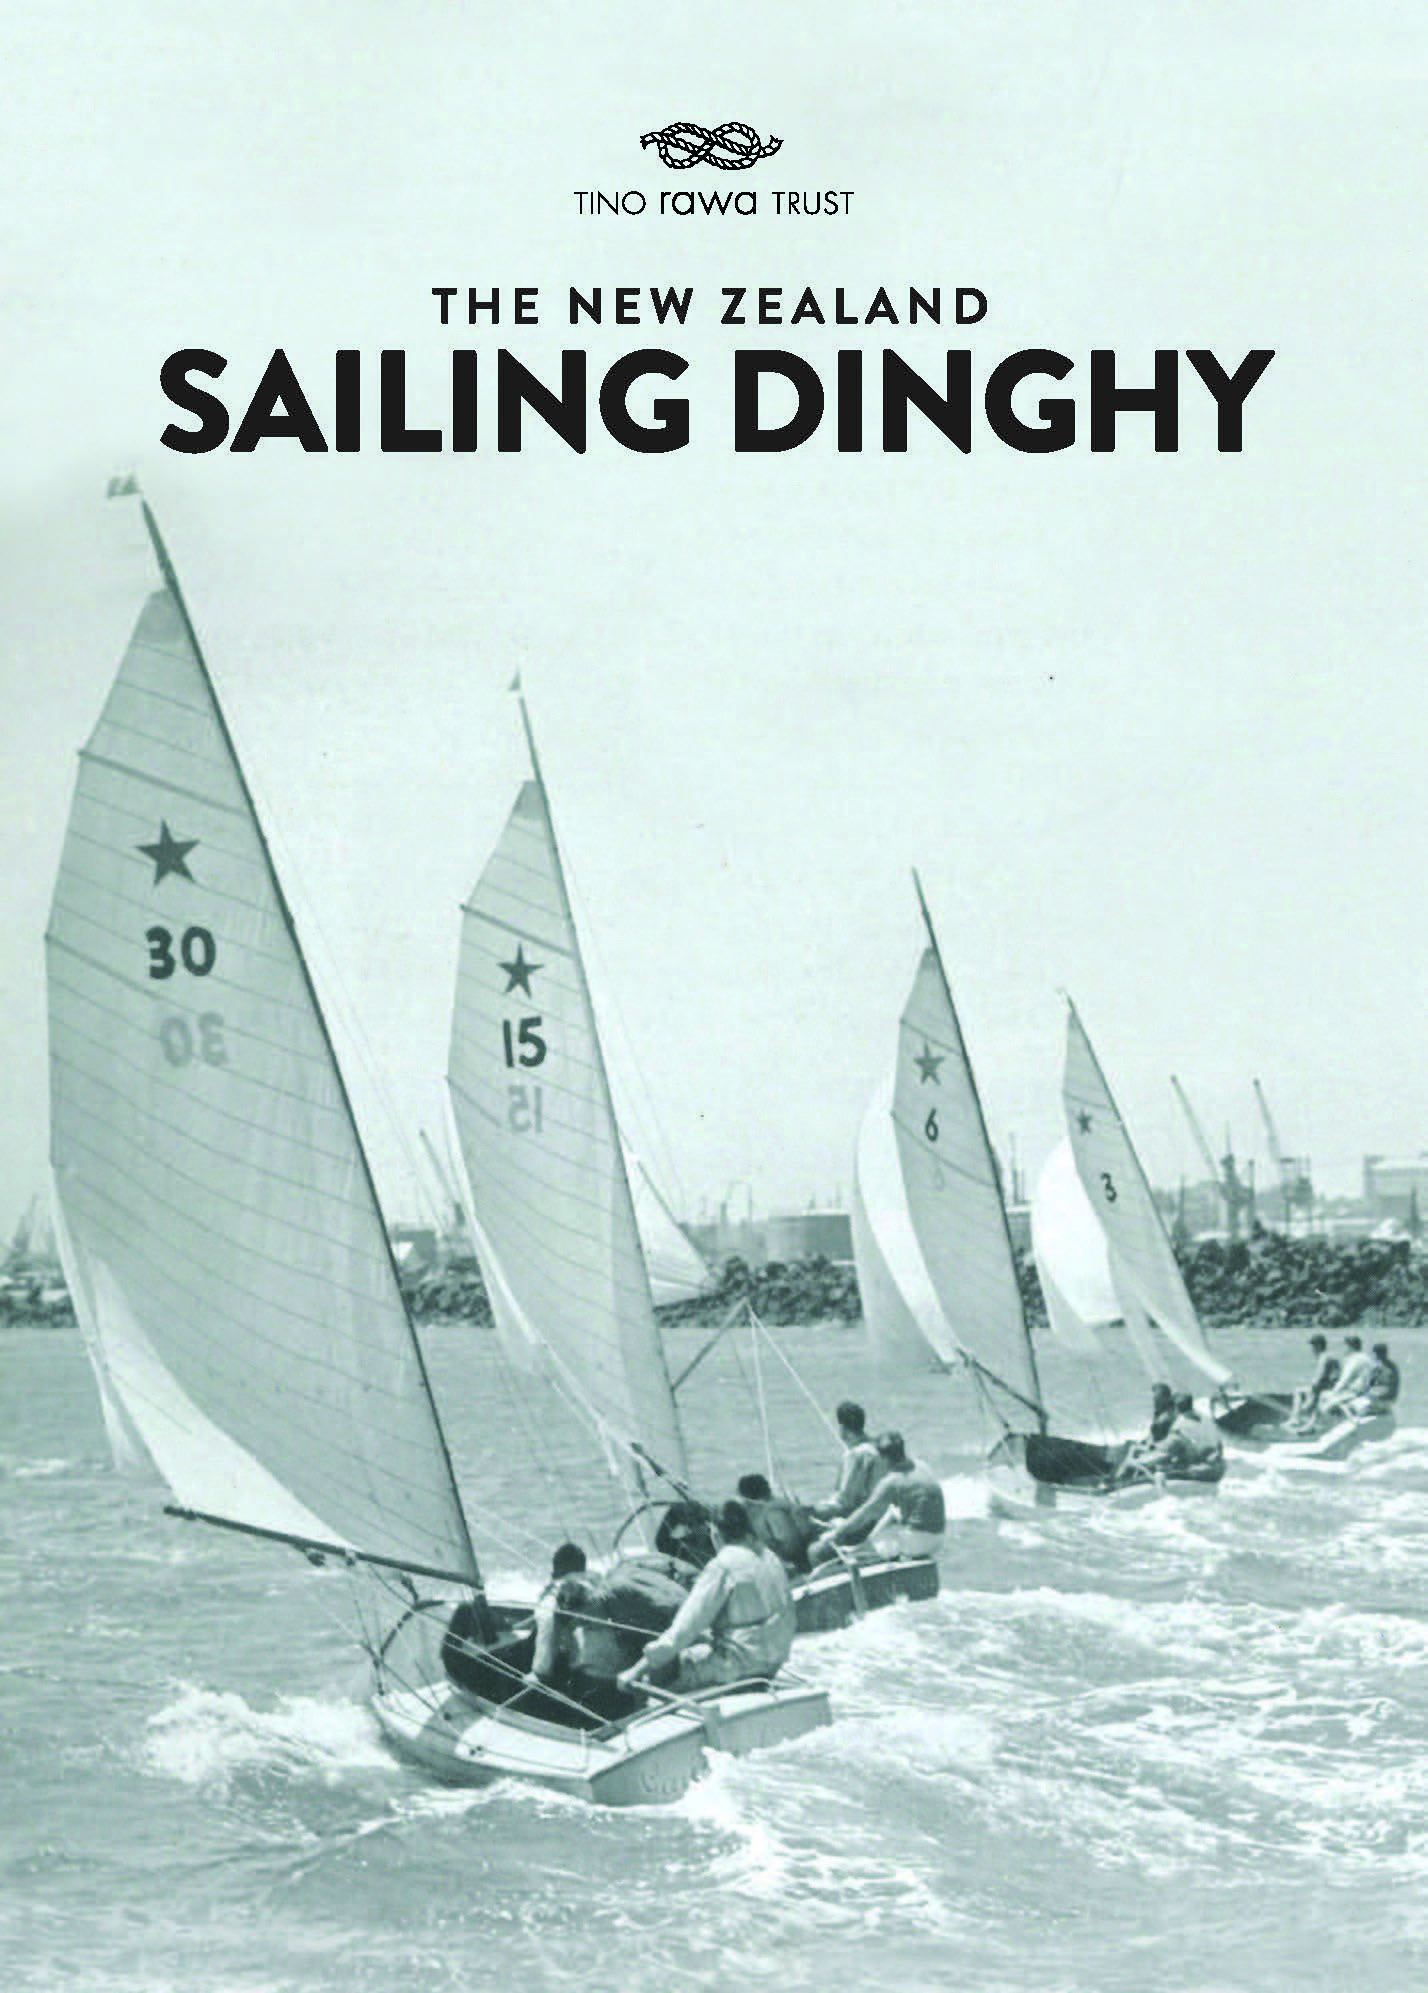 The New Zealand   Sailing Dinghy - From the iconic P Class dinghy, designed by Harry Highet in 1919, the Starling, Zephyr and Mistral (Des Townson), Javelin, Cherub, Flying Ant and Jollyboat (John Spencer), Wakatere, Frostbite, Sunburst (Jack Brooke) through to high performance racing craft, the New Zealand sailing dinghy in all its forms is celebrated in this publication by the Tino Rawa Trust.Dinghies, designs and designers are showcased in this publication recognising the many successful New Zealand sailing dinghy classes. This booklet celebrates the New Zealand designers, technology and construction and our world-famous sailors that started their careers in these unique New Zealand yachts.Currently Out of Stock